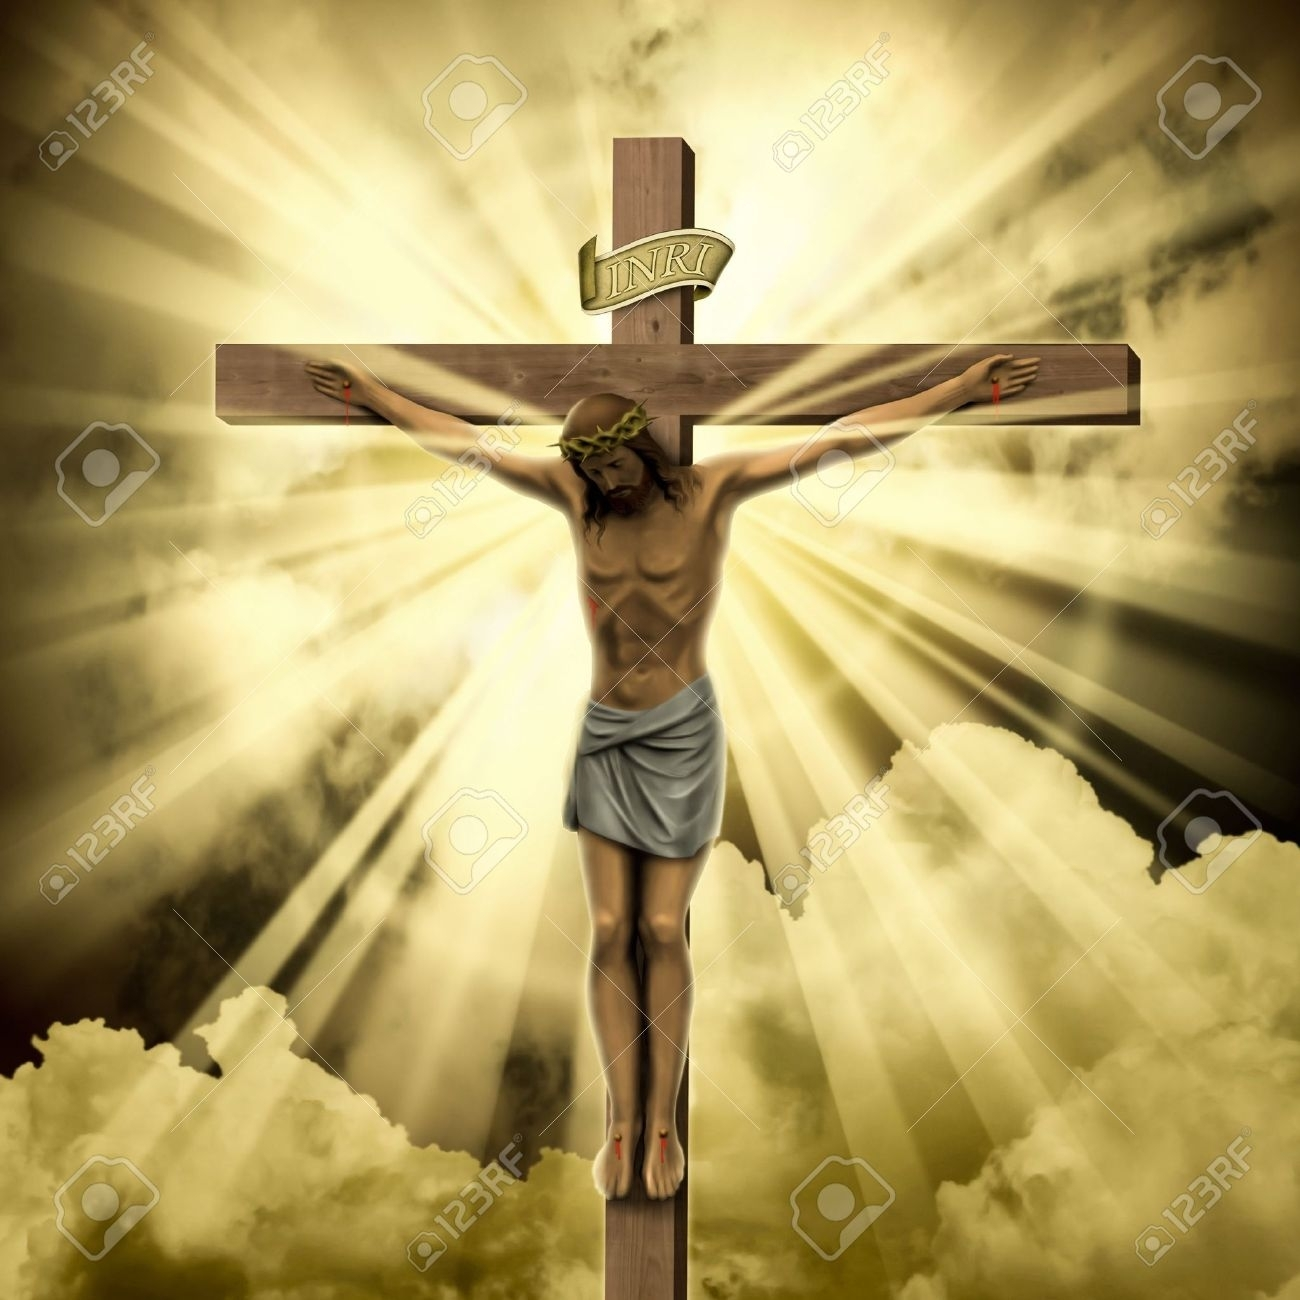 jesus christ on the cross with clouds stock photo, picture and